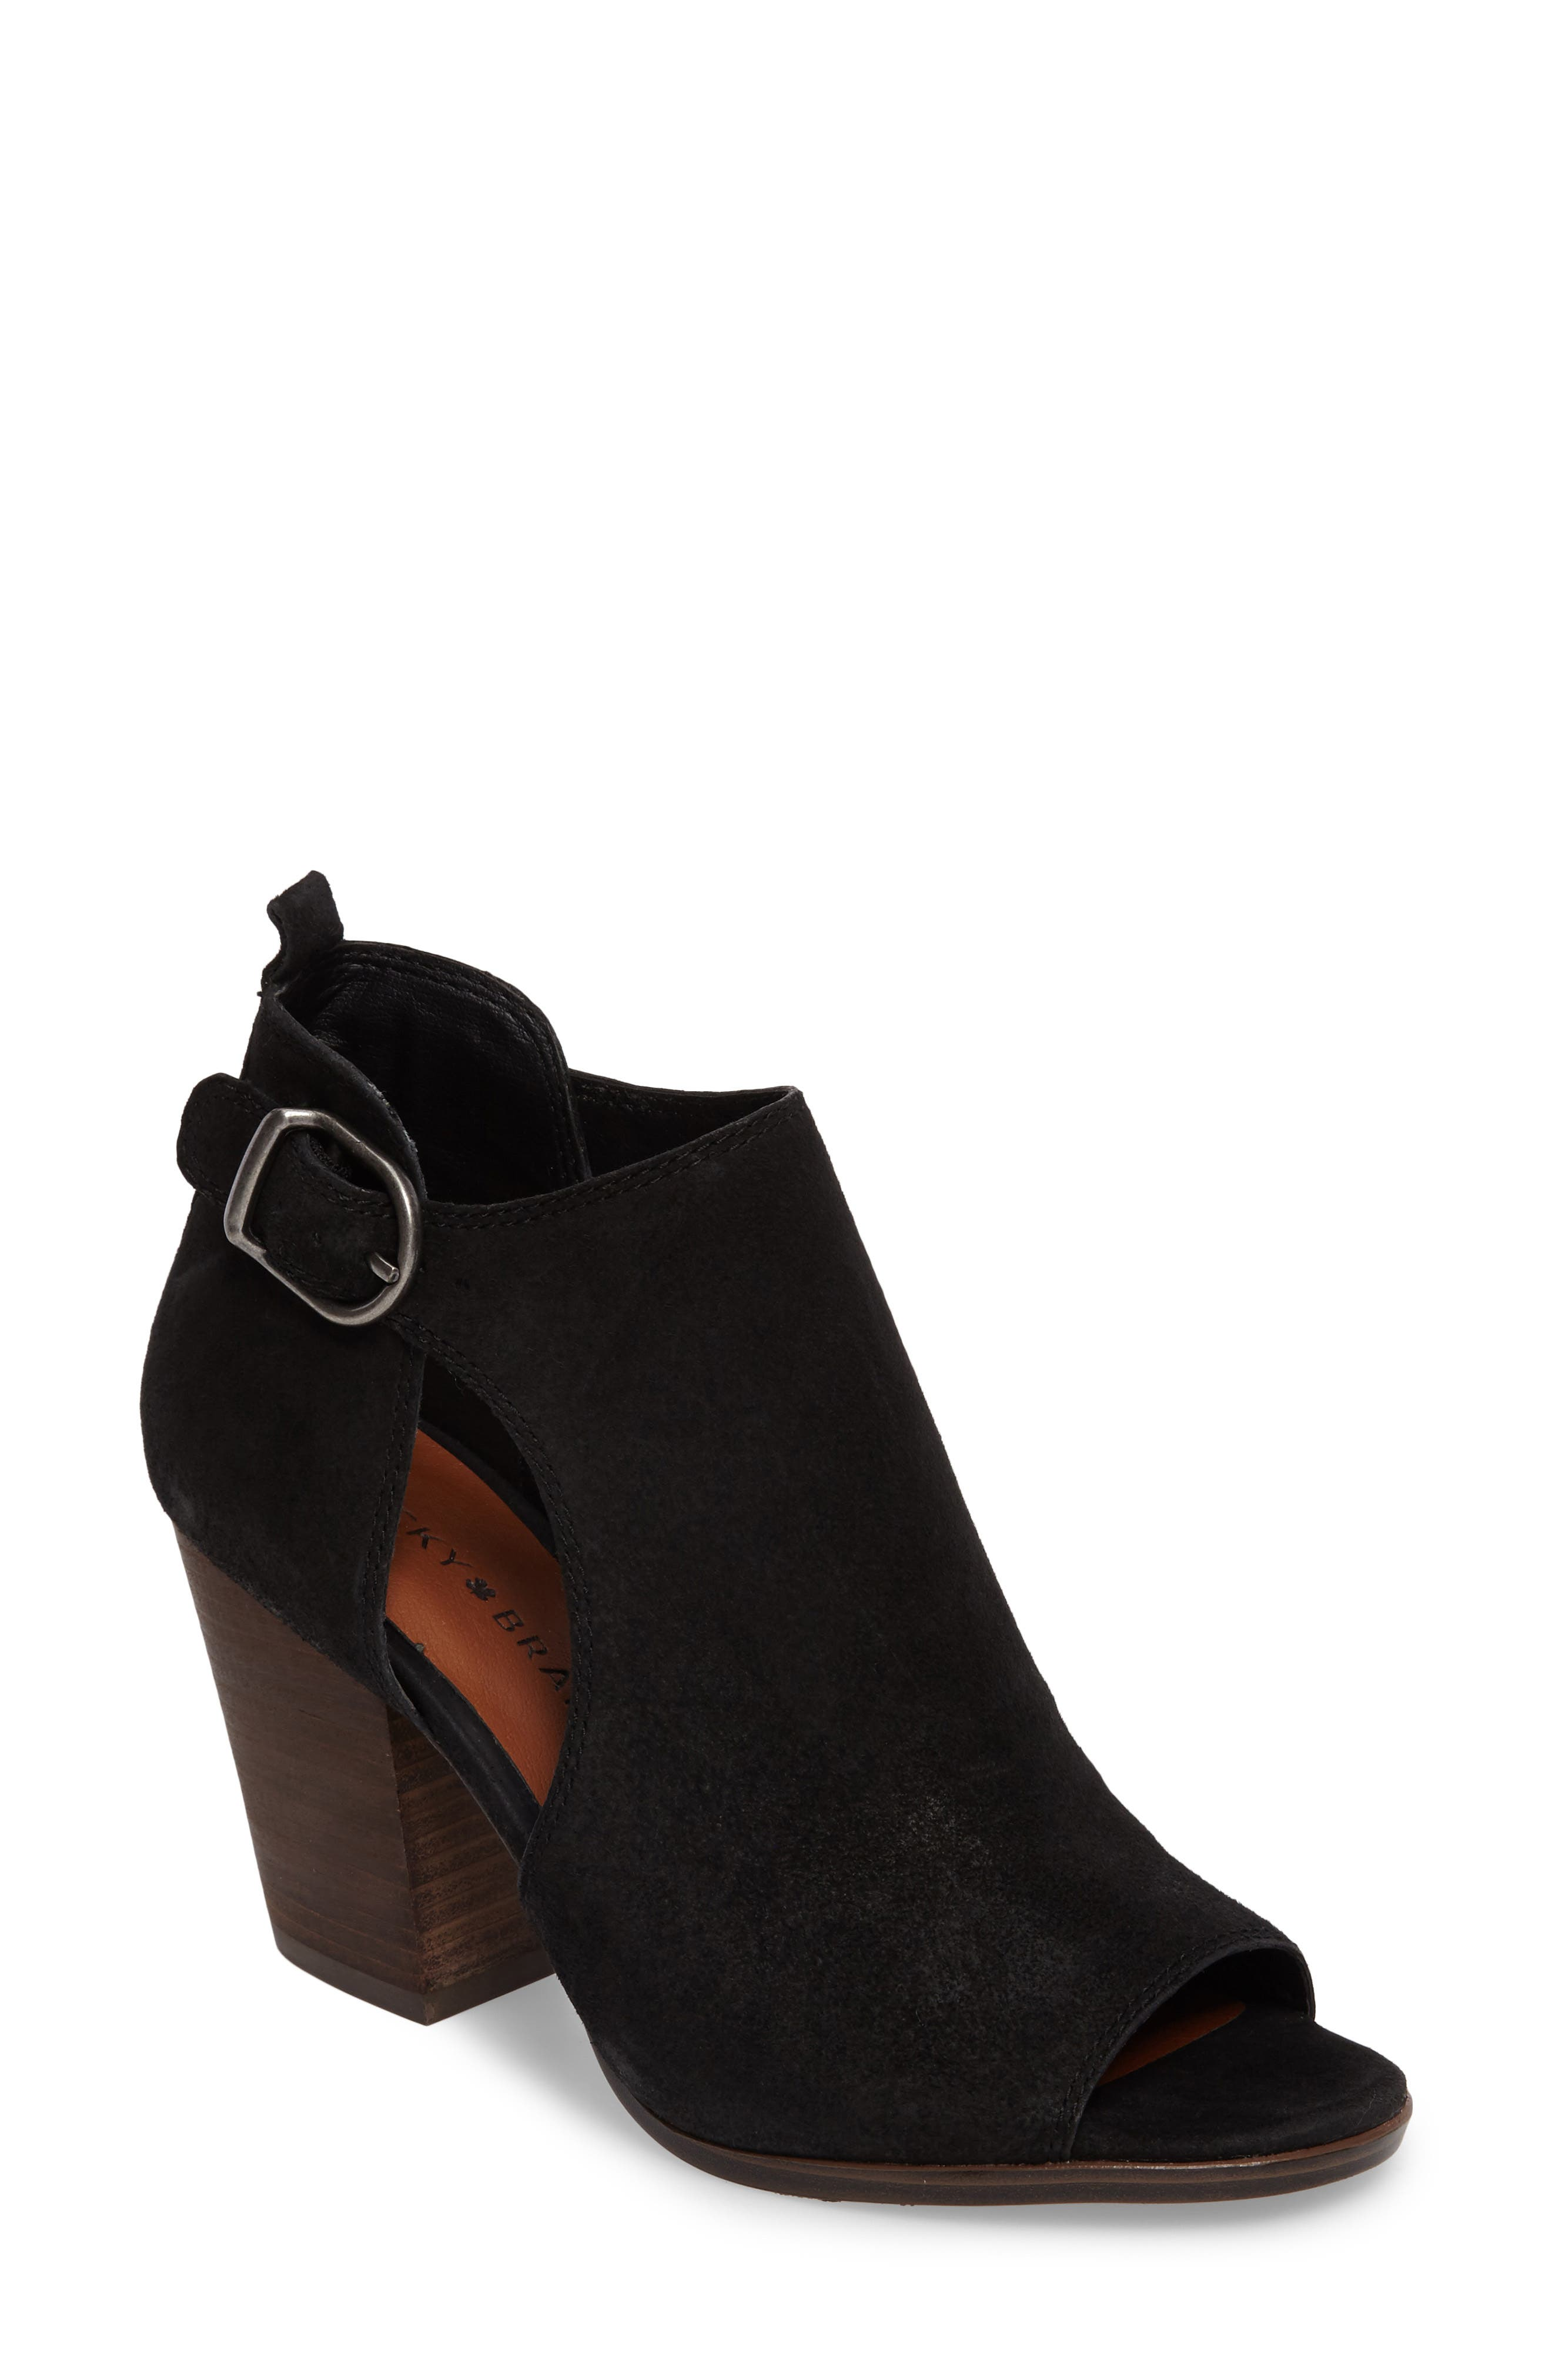 LUCKY BRAND,                             Oona Open Side Bootie,                             Main thumbnail 1, color,                             001